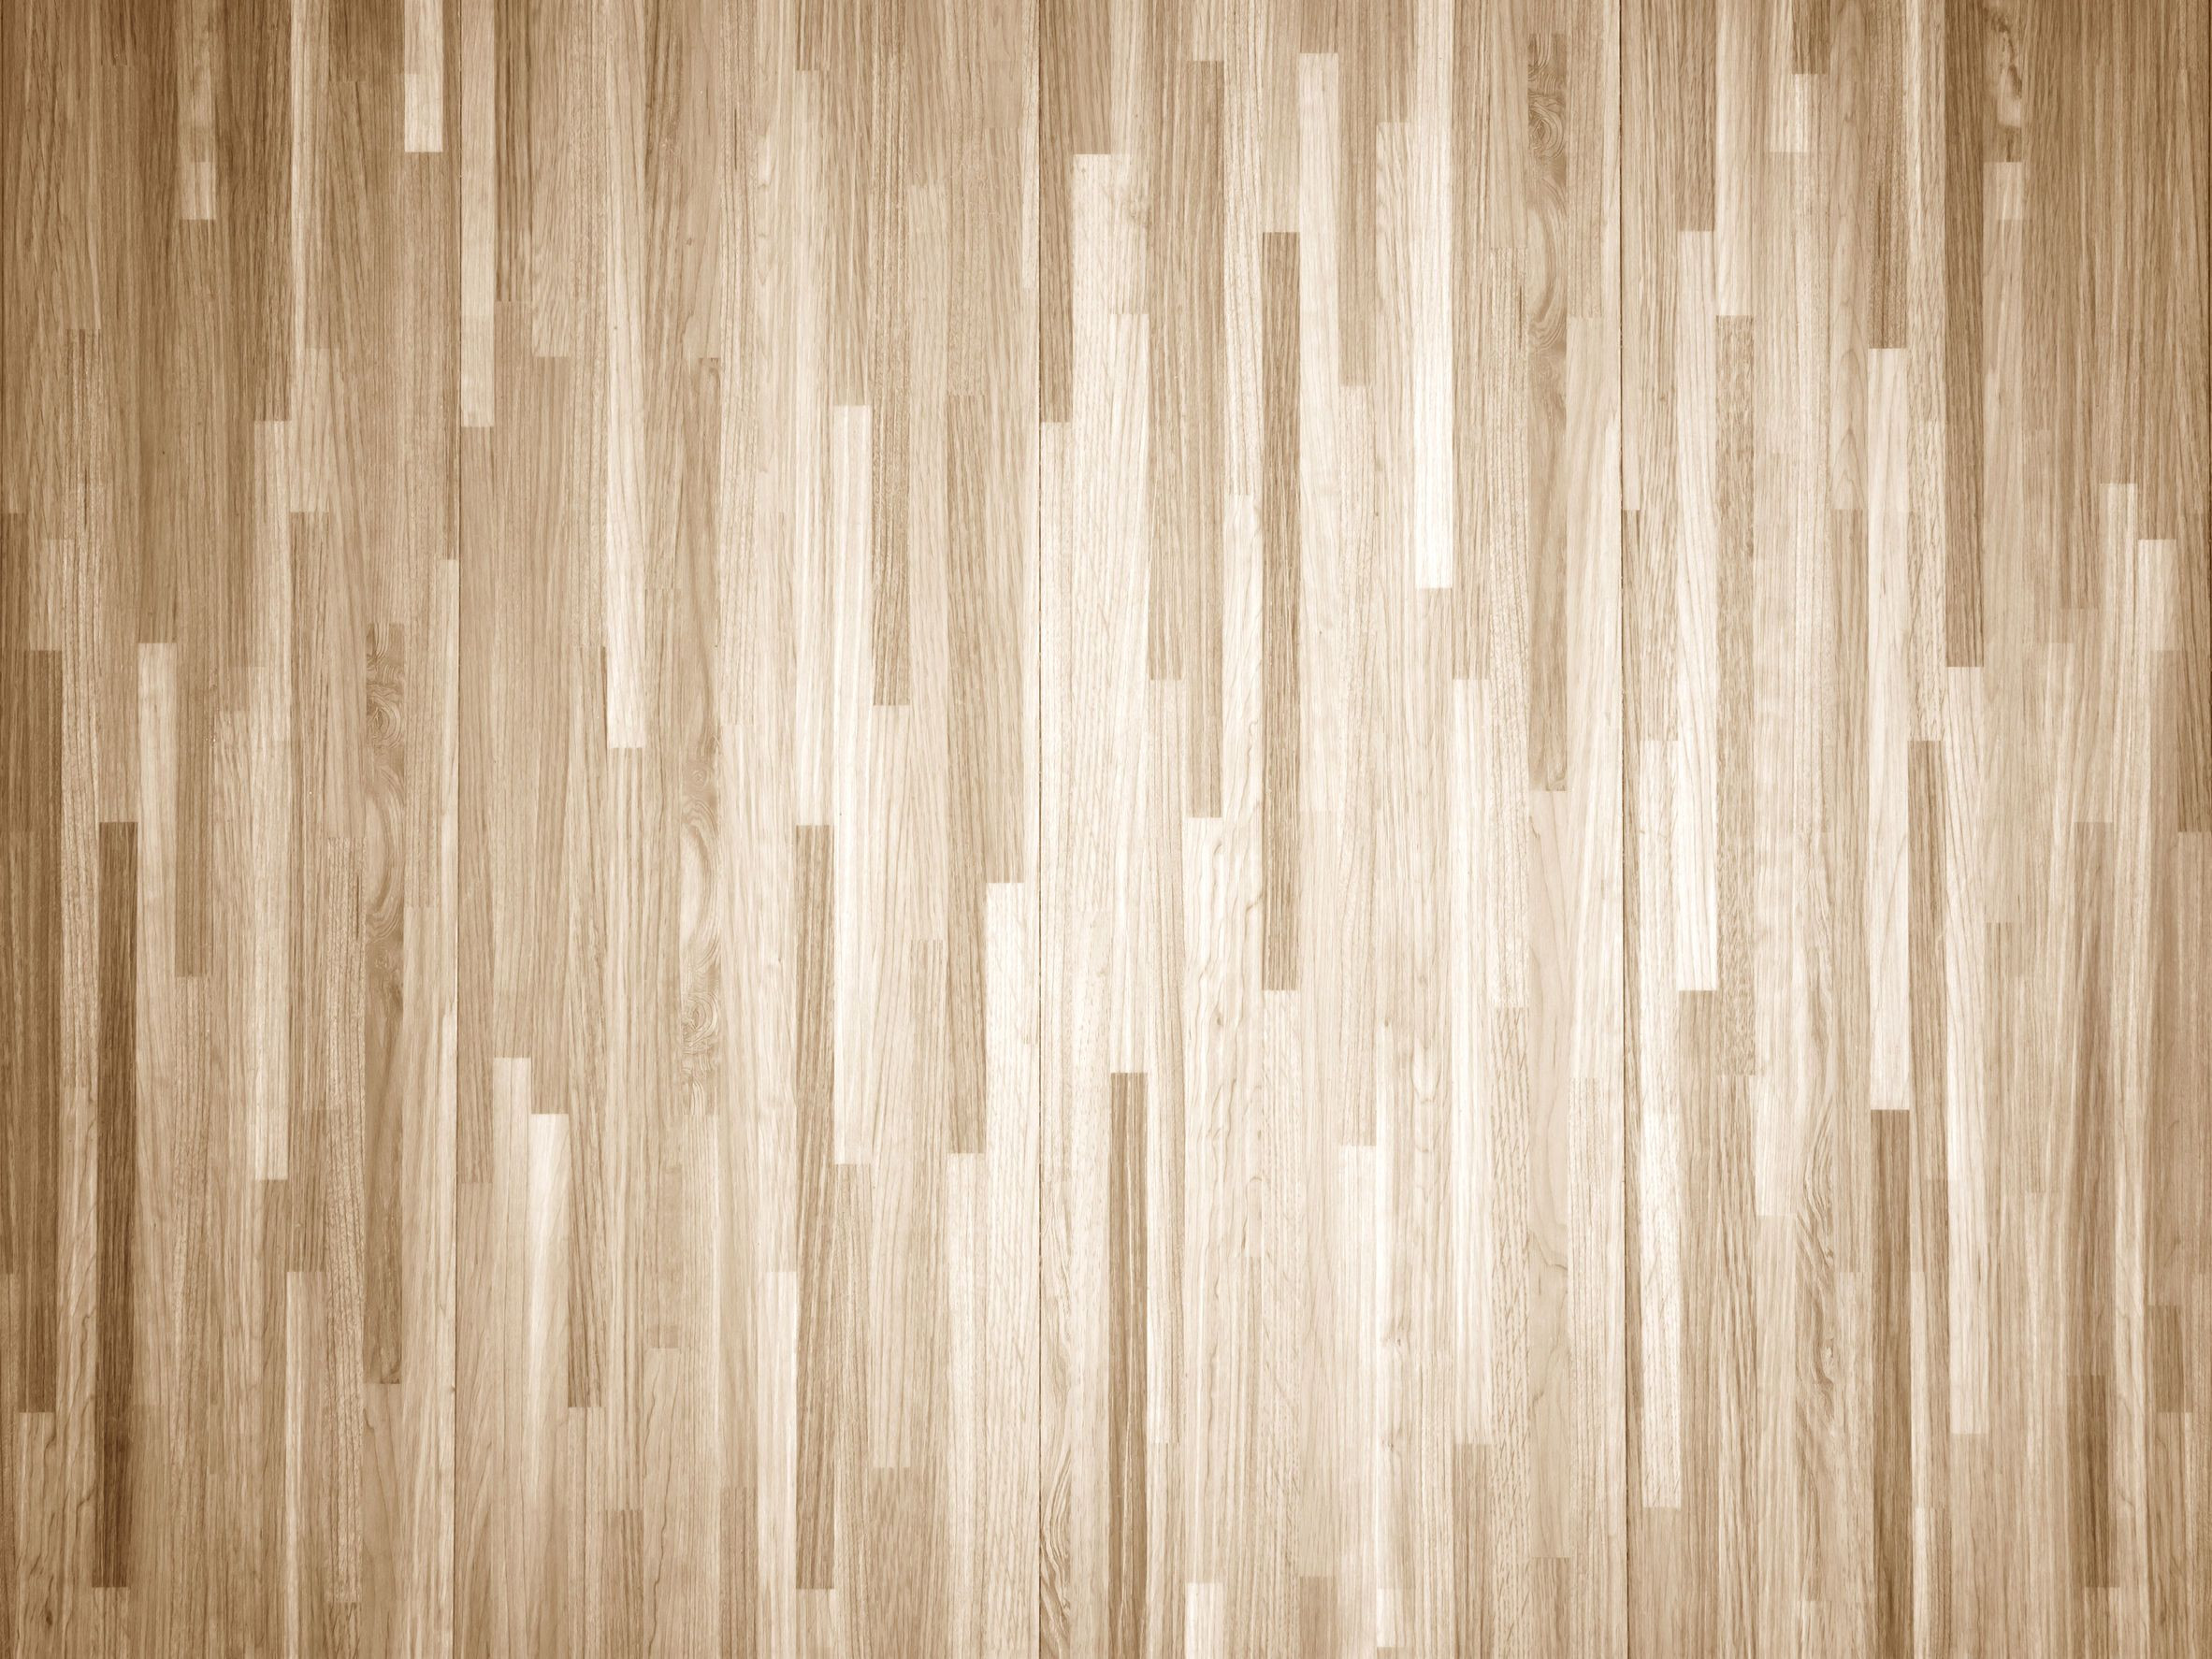 hardwood flooring cost square foot installed of how to chemically strip wood floors woodfloordoctor com inside you